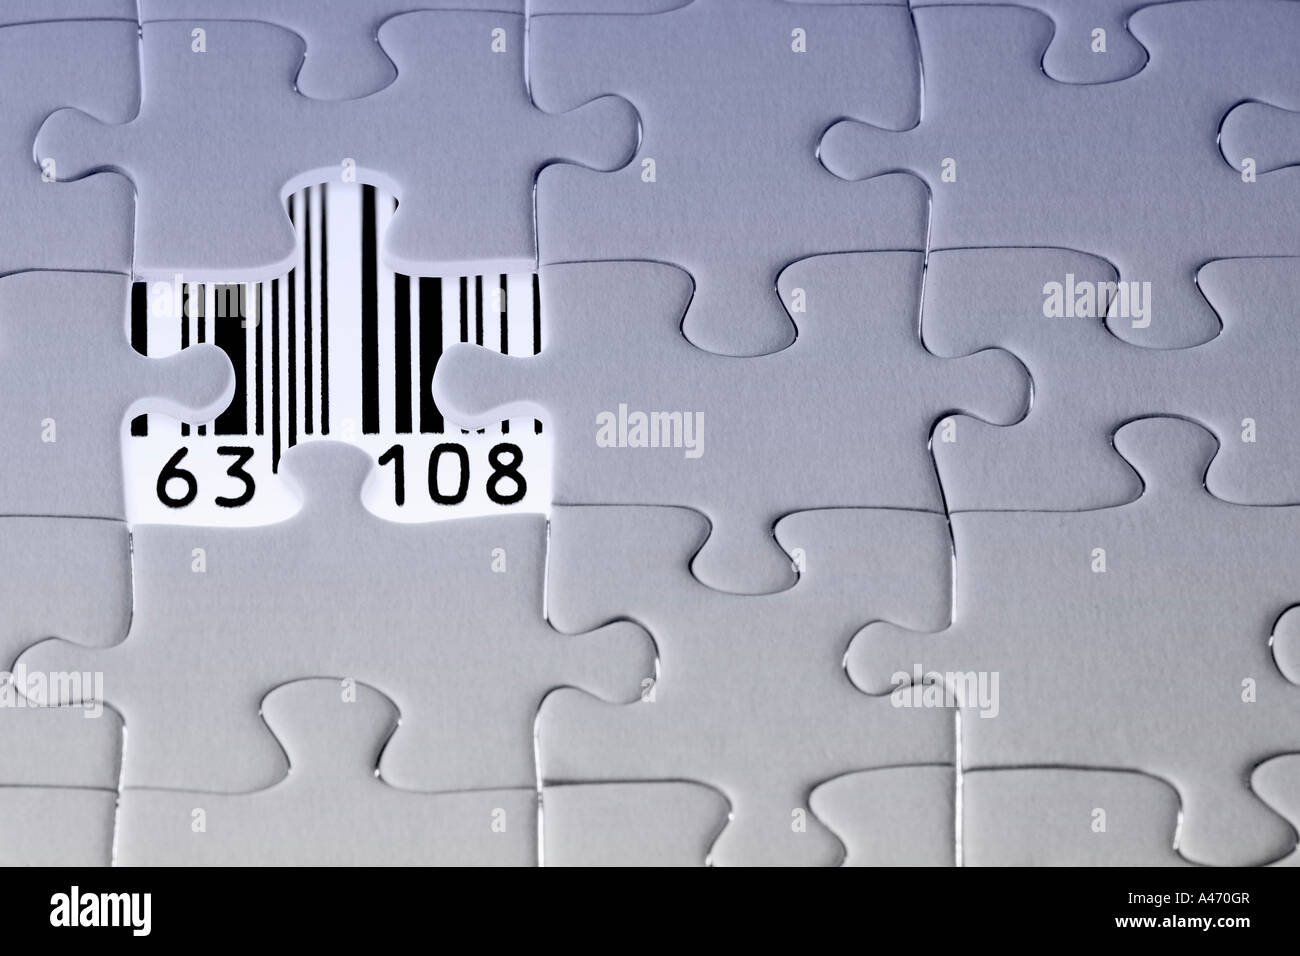 Jigsaw Puzzle The Last Missing Piece Revealing A Barcode With Numbers